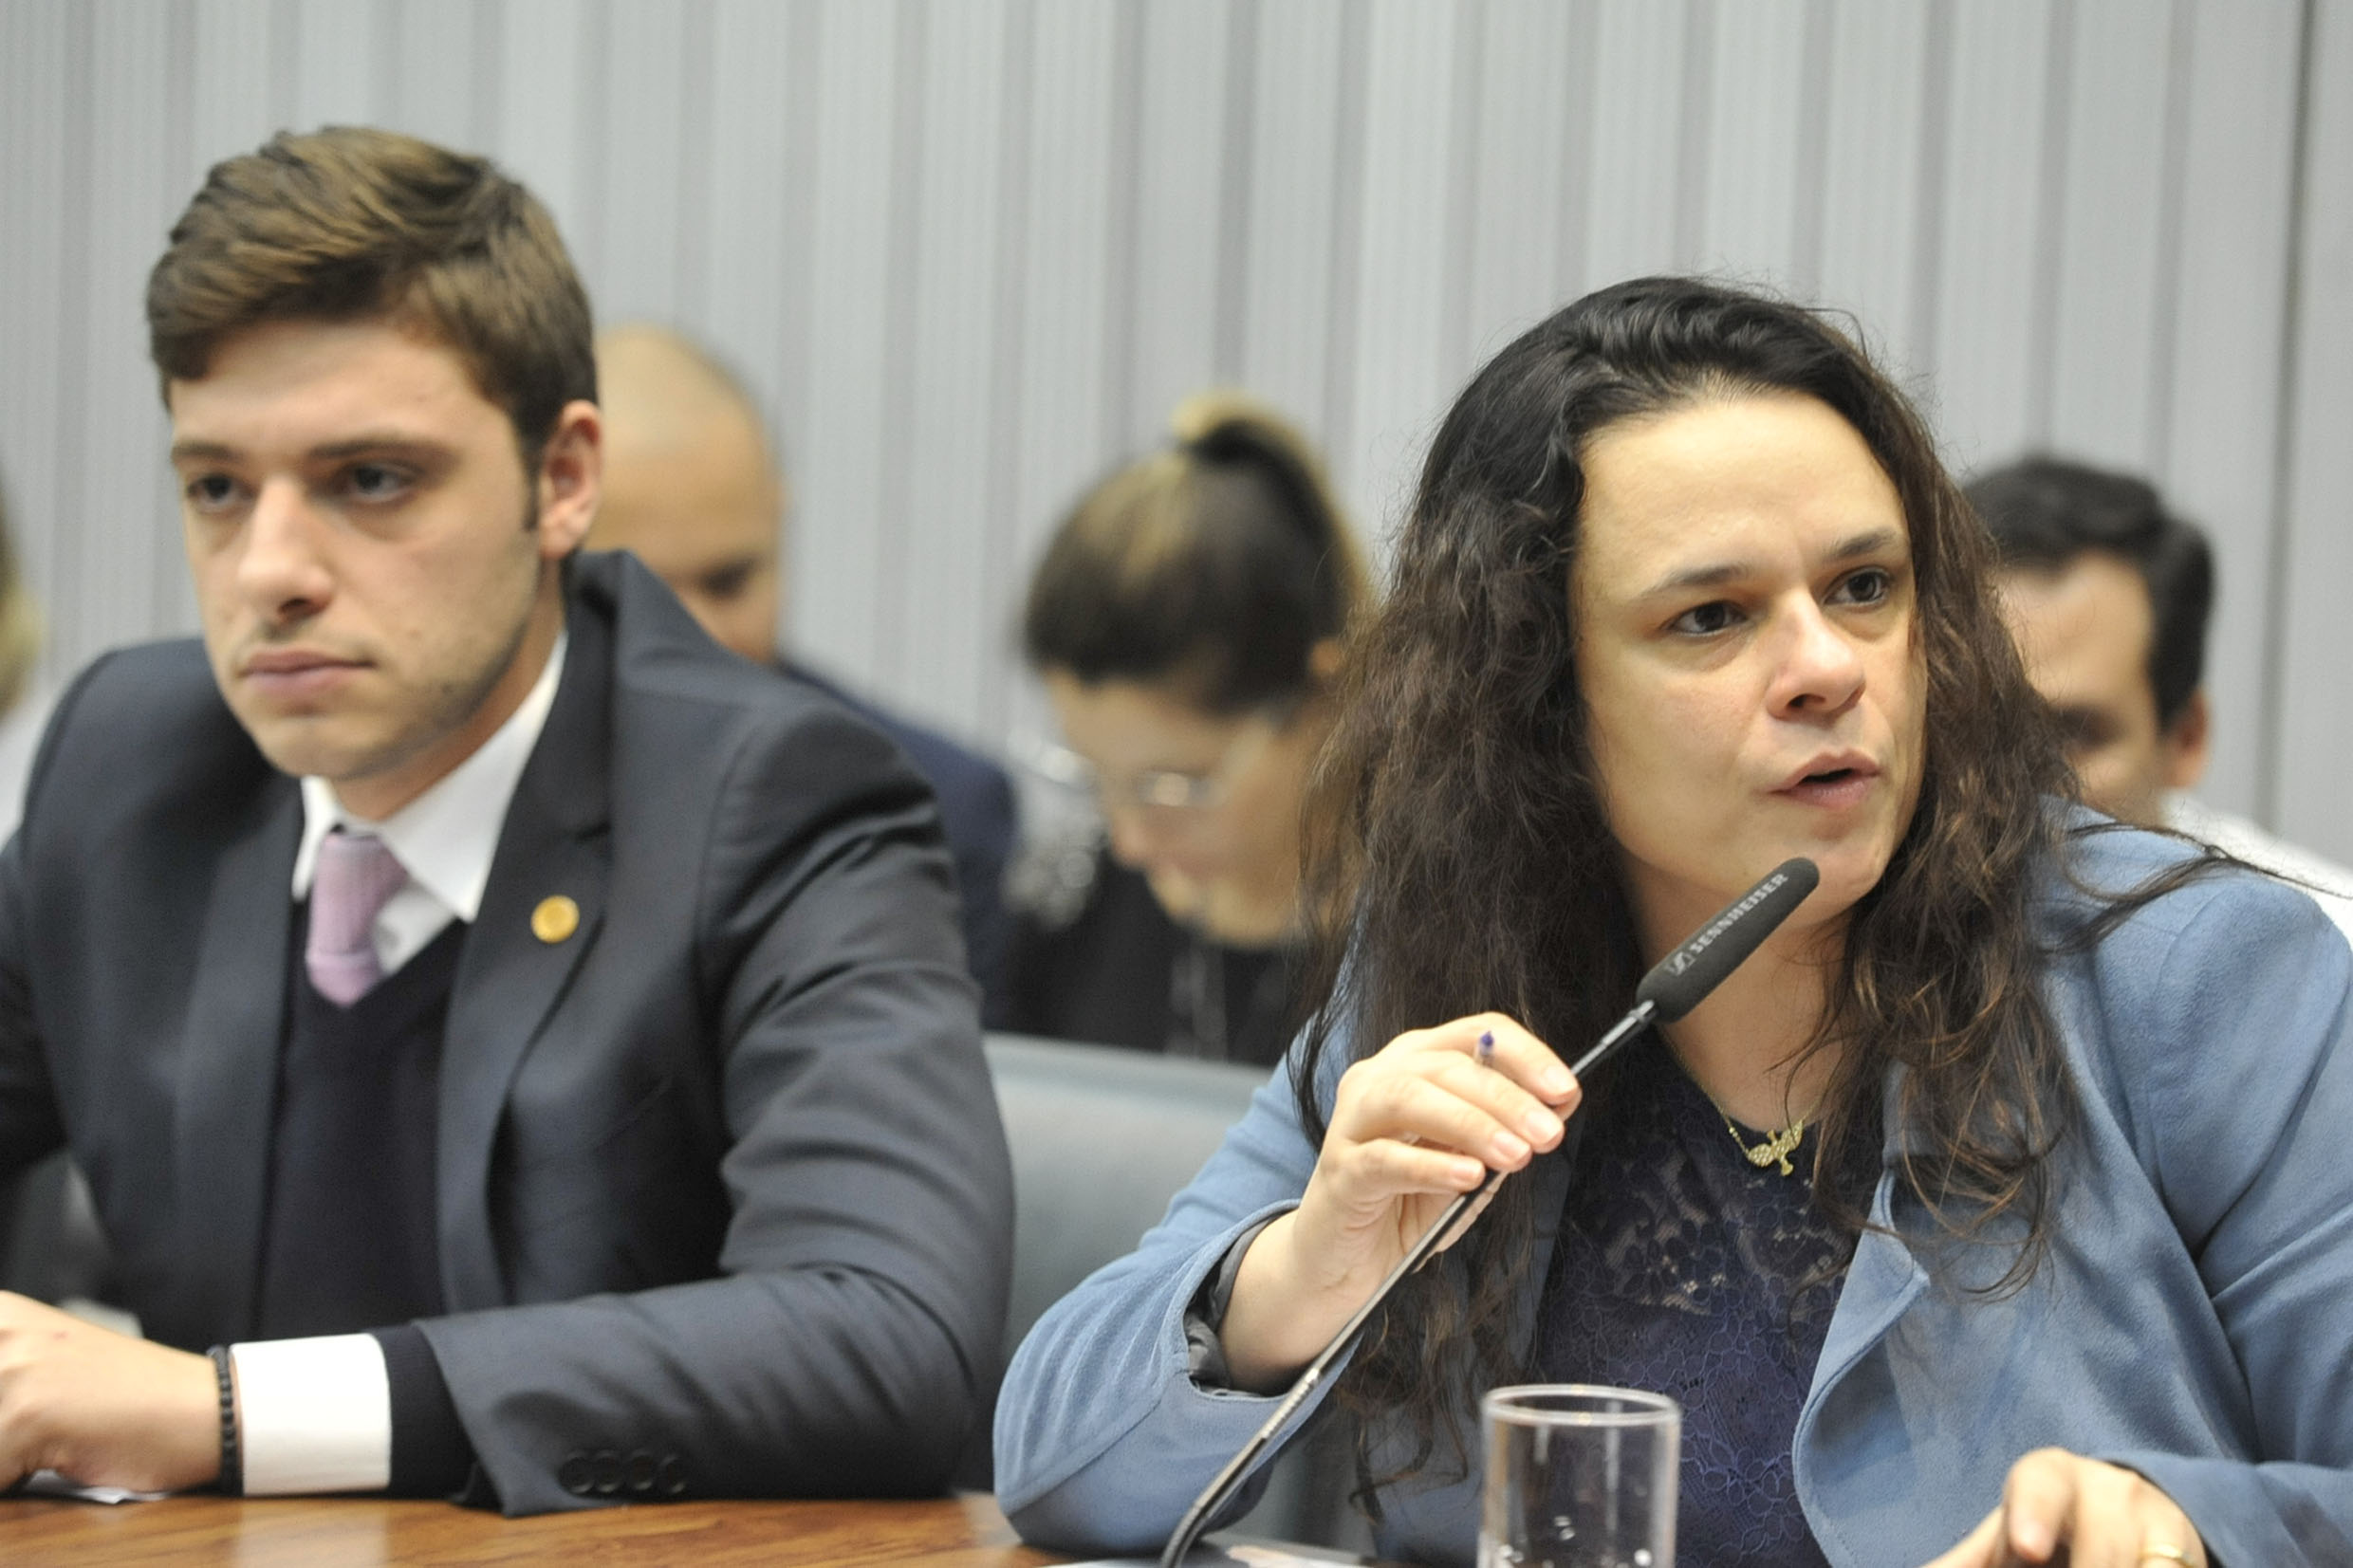 Thiago Auricchio e Janaina Paschoal<a style='float:right' href='https://www3.al.sp.gov.br/repositorio/noticia/N-08-2019/fg238445.jpg' target=_blank><img src='/_img/material-file-download-white.png' width='14px' alt='Clique para baixar a imagem'></a>